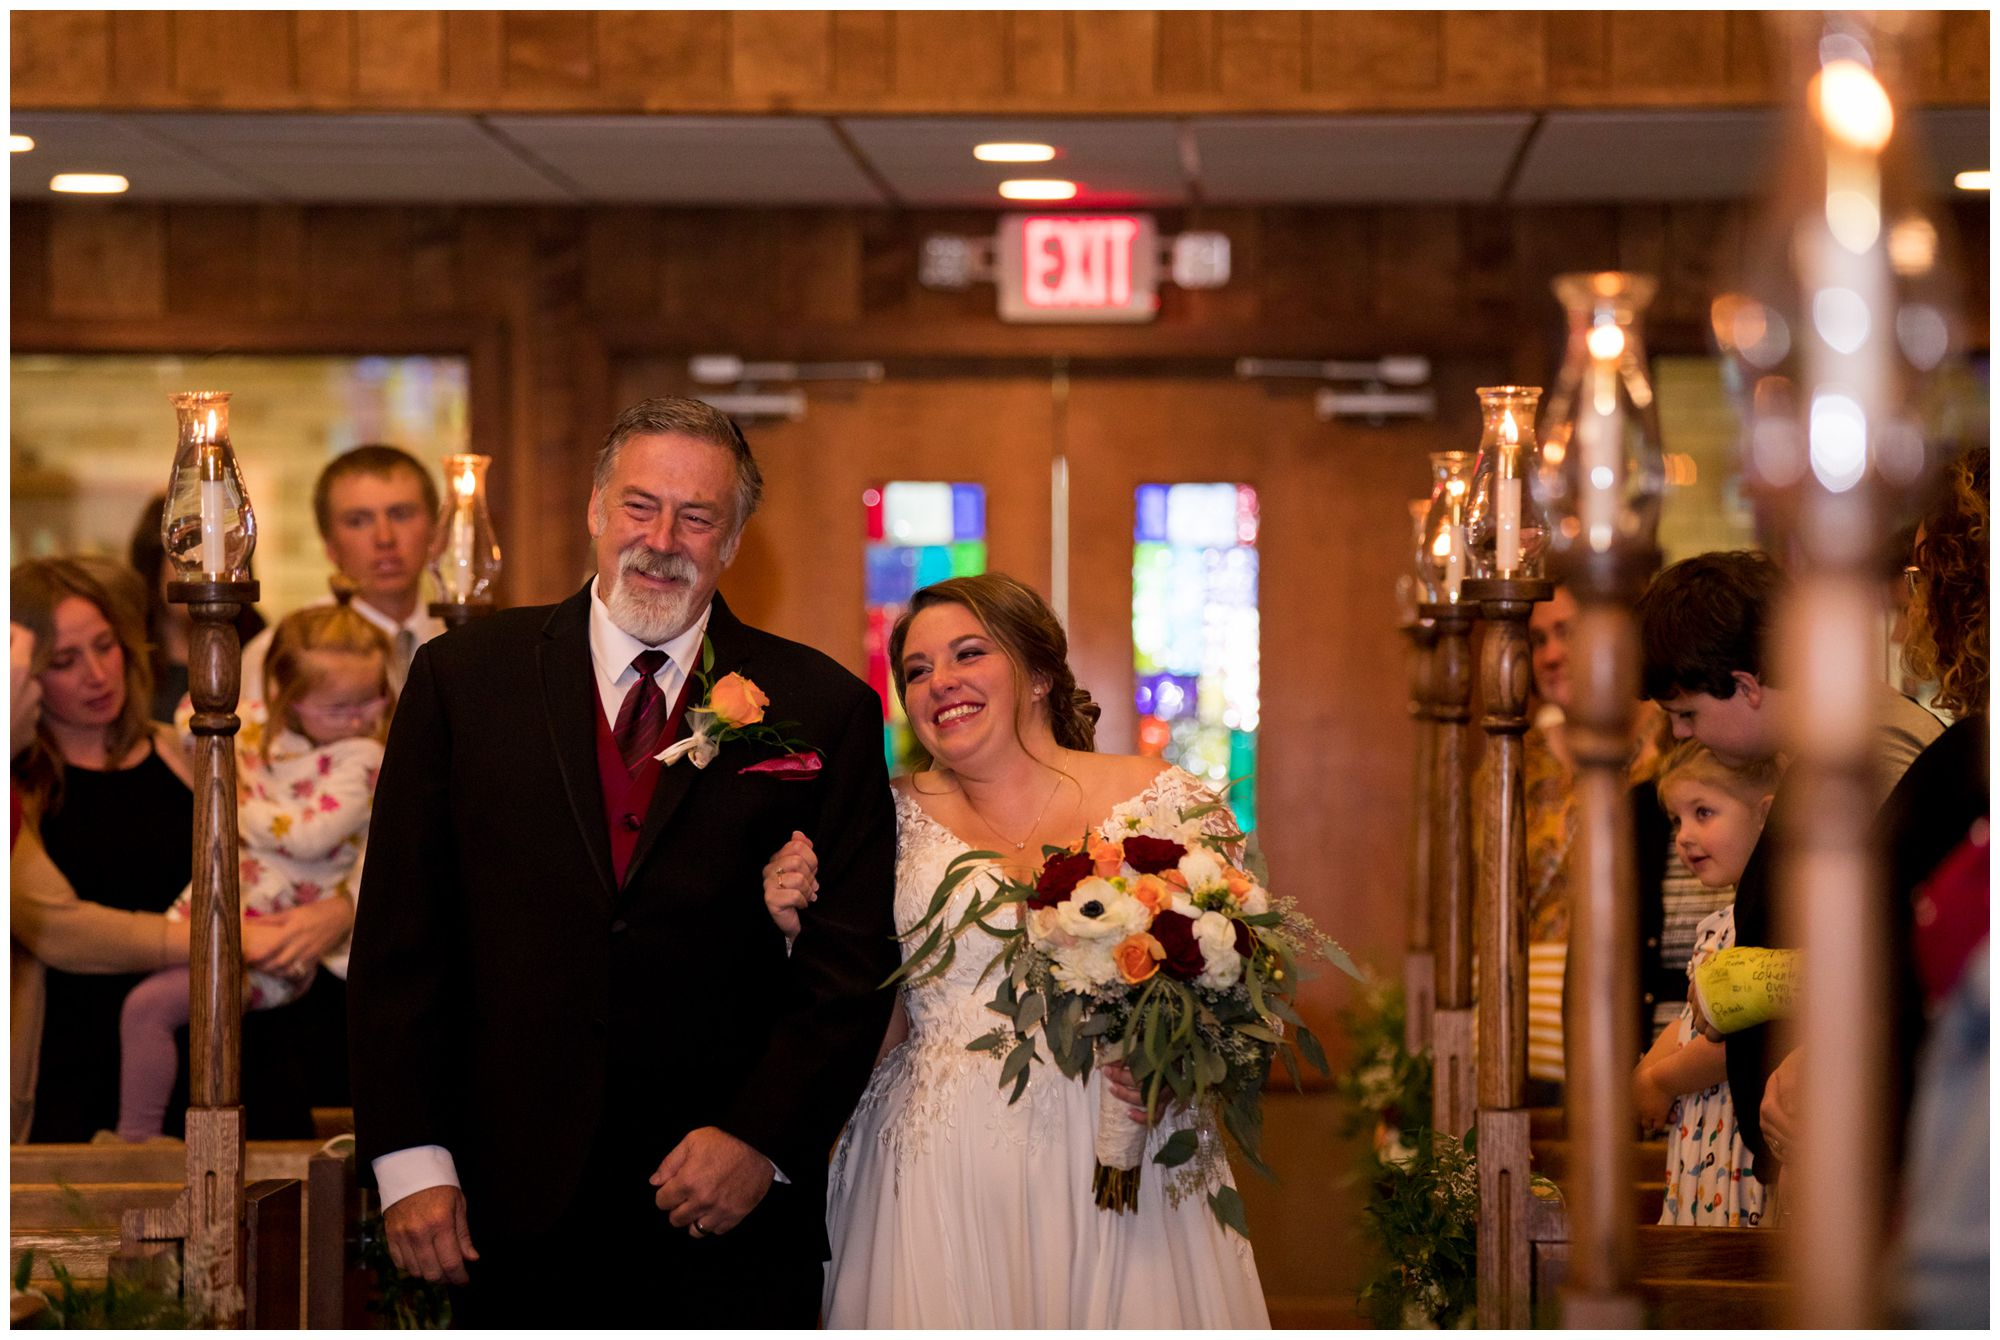 bride and father walking down aisle during wedding ceremony at Zion Lutheran Church